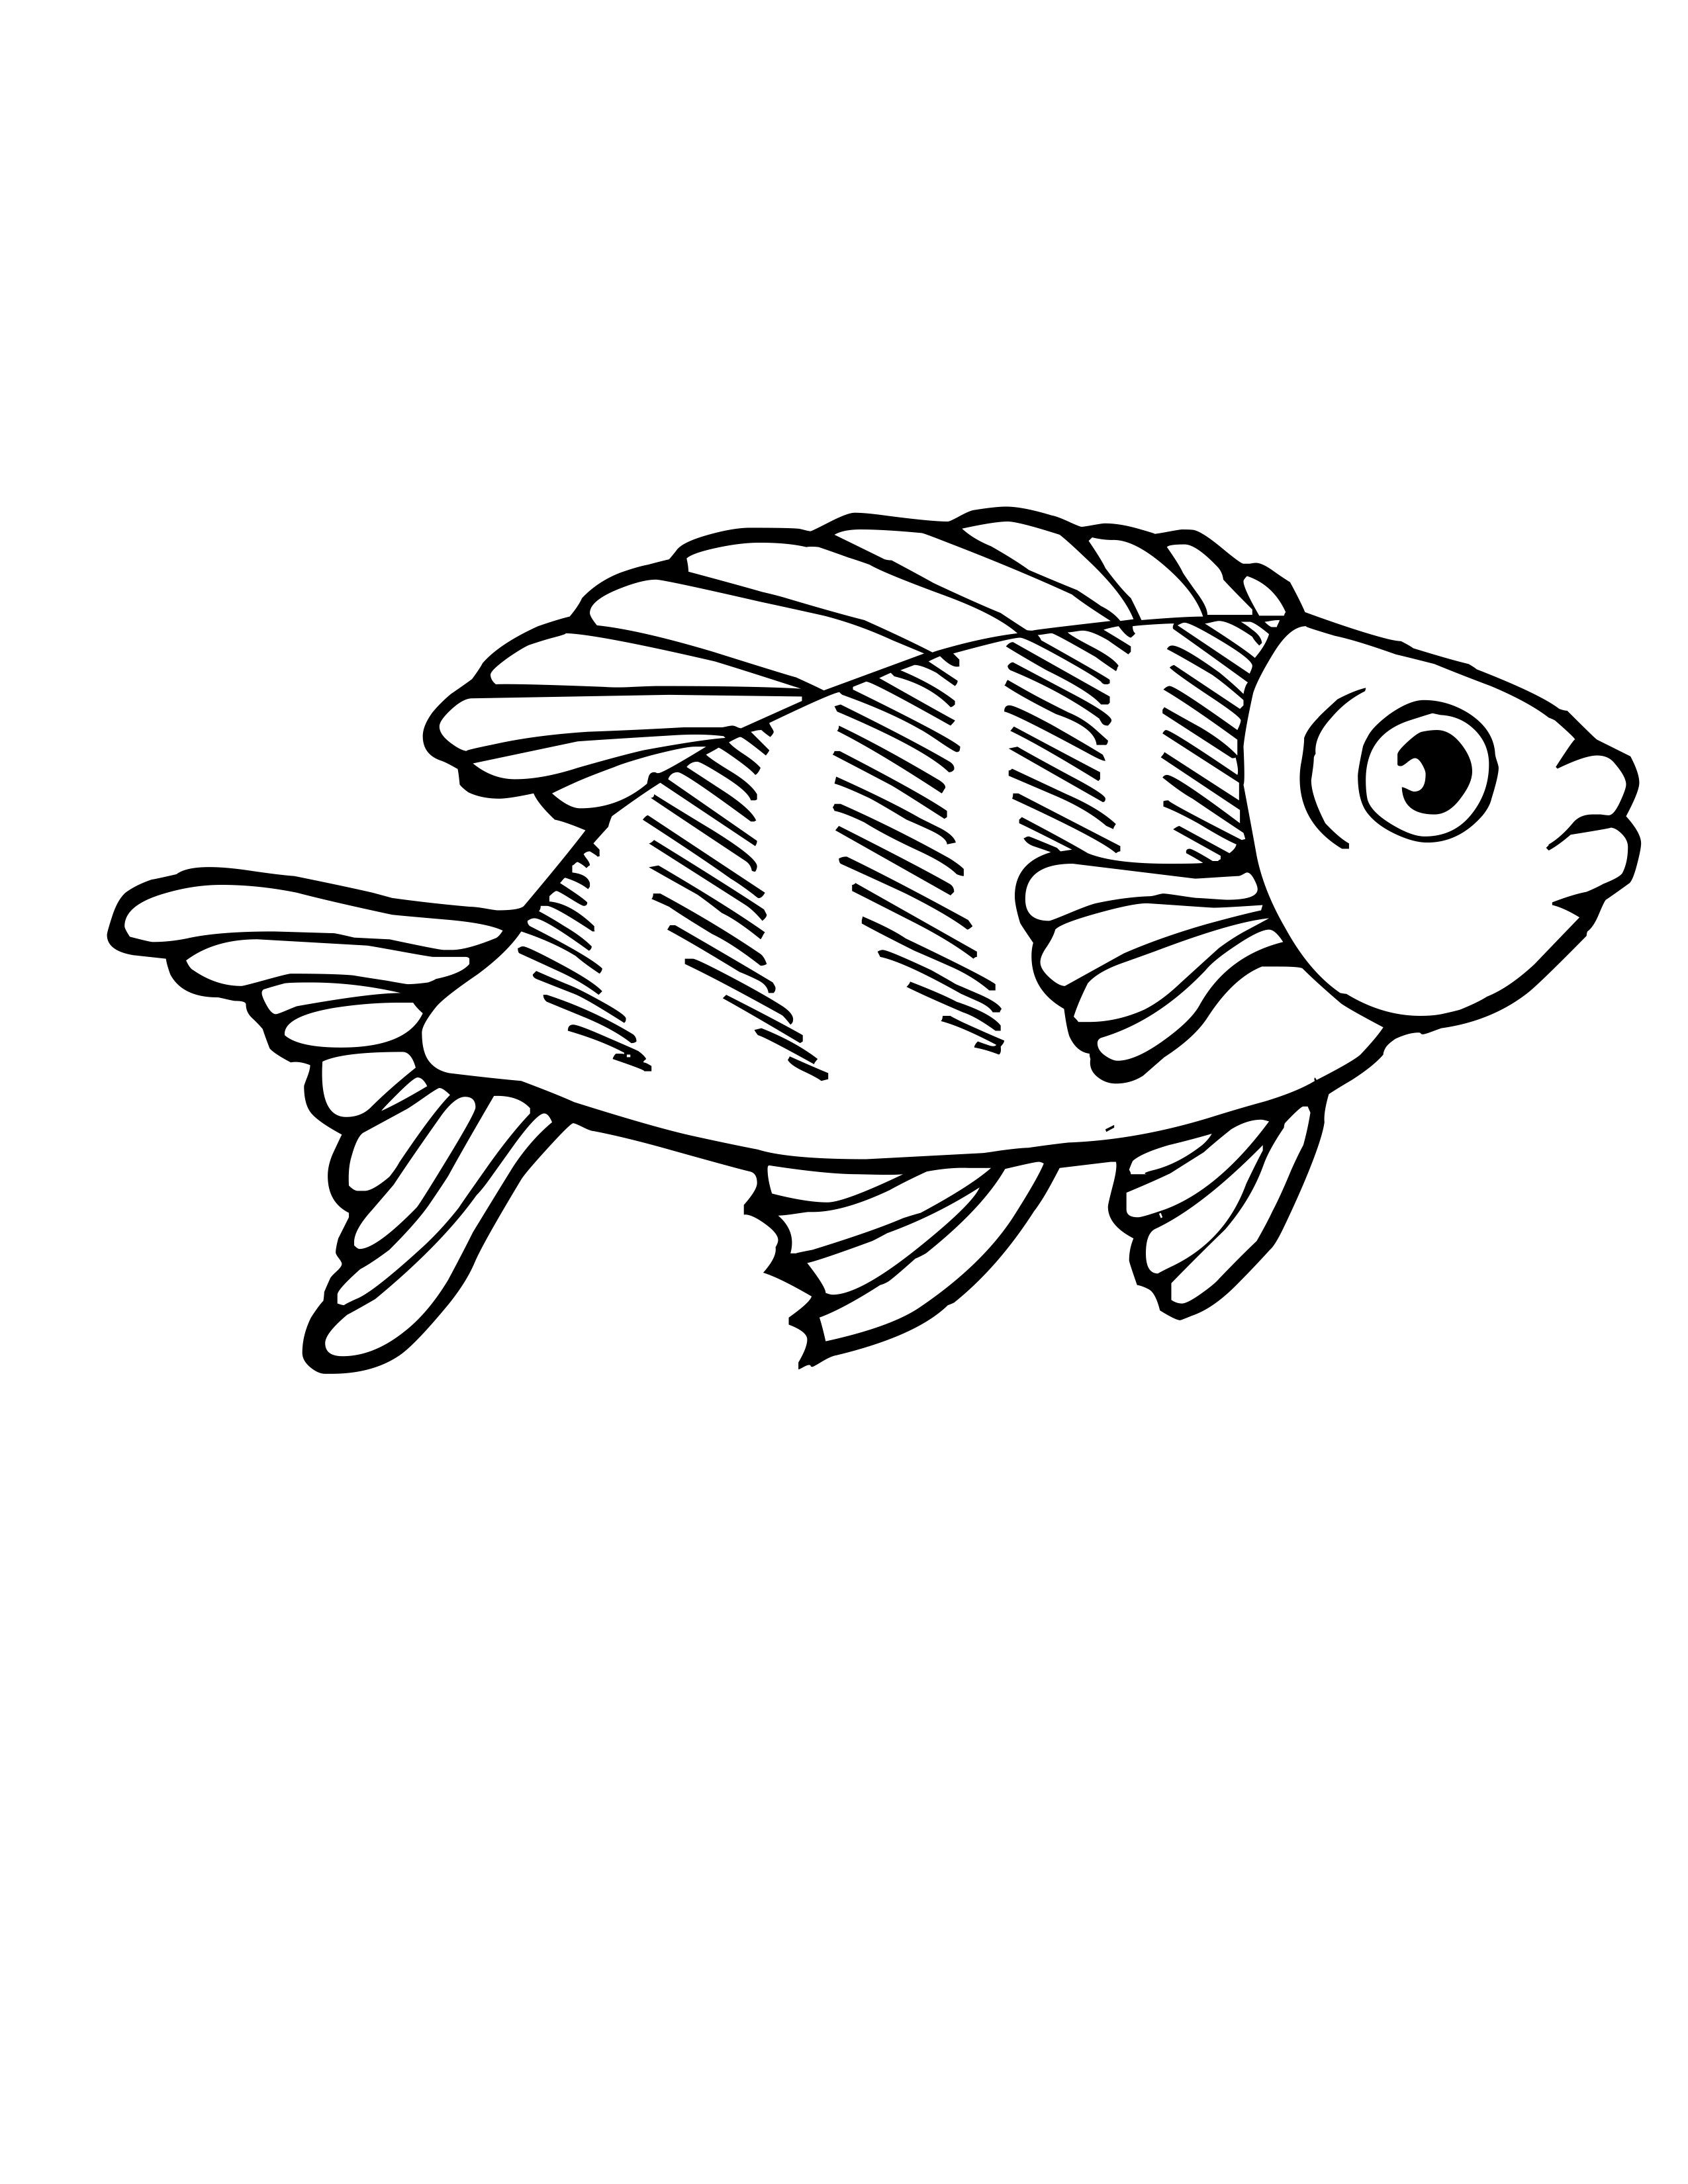 Cool Coloring Pages Of Fishes Free Download Uncategorized